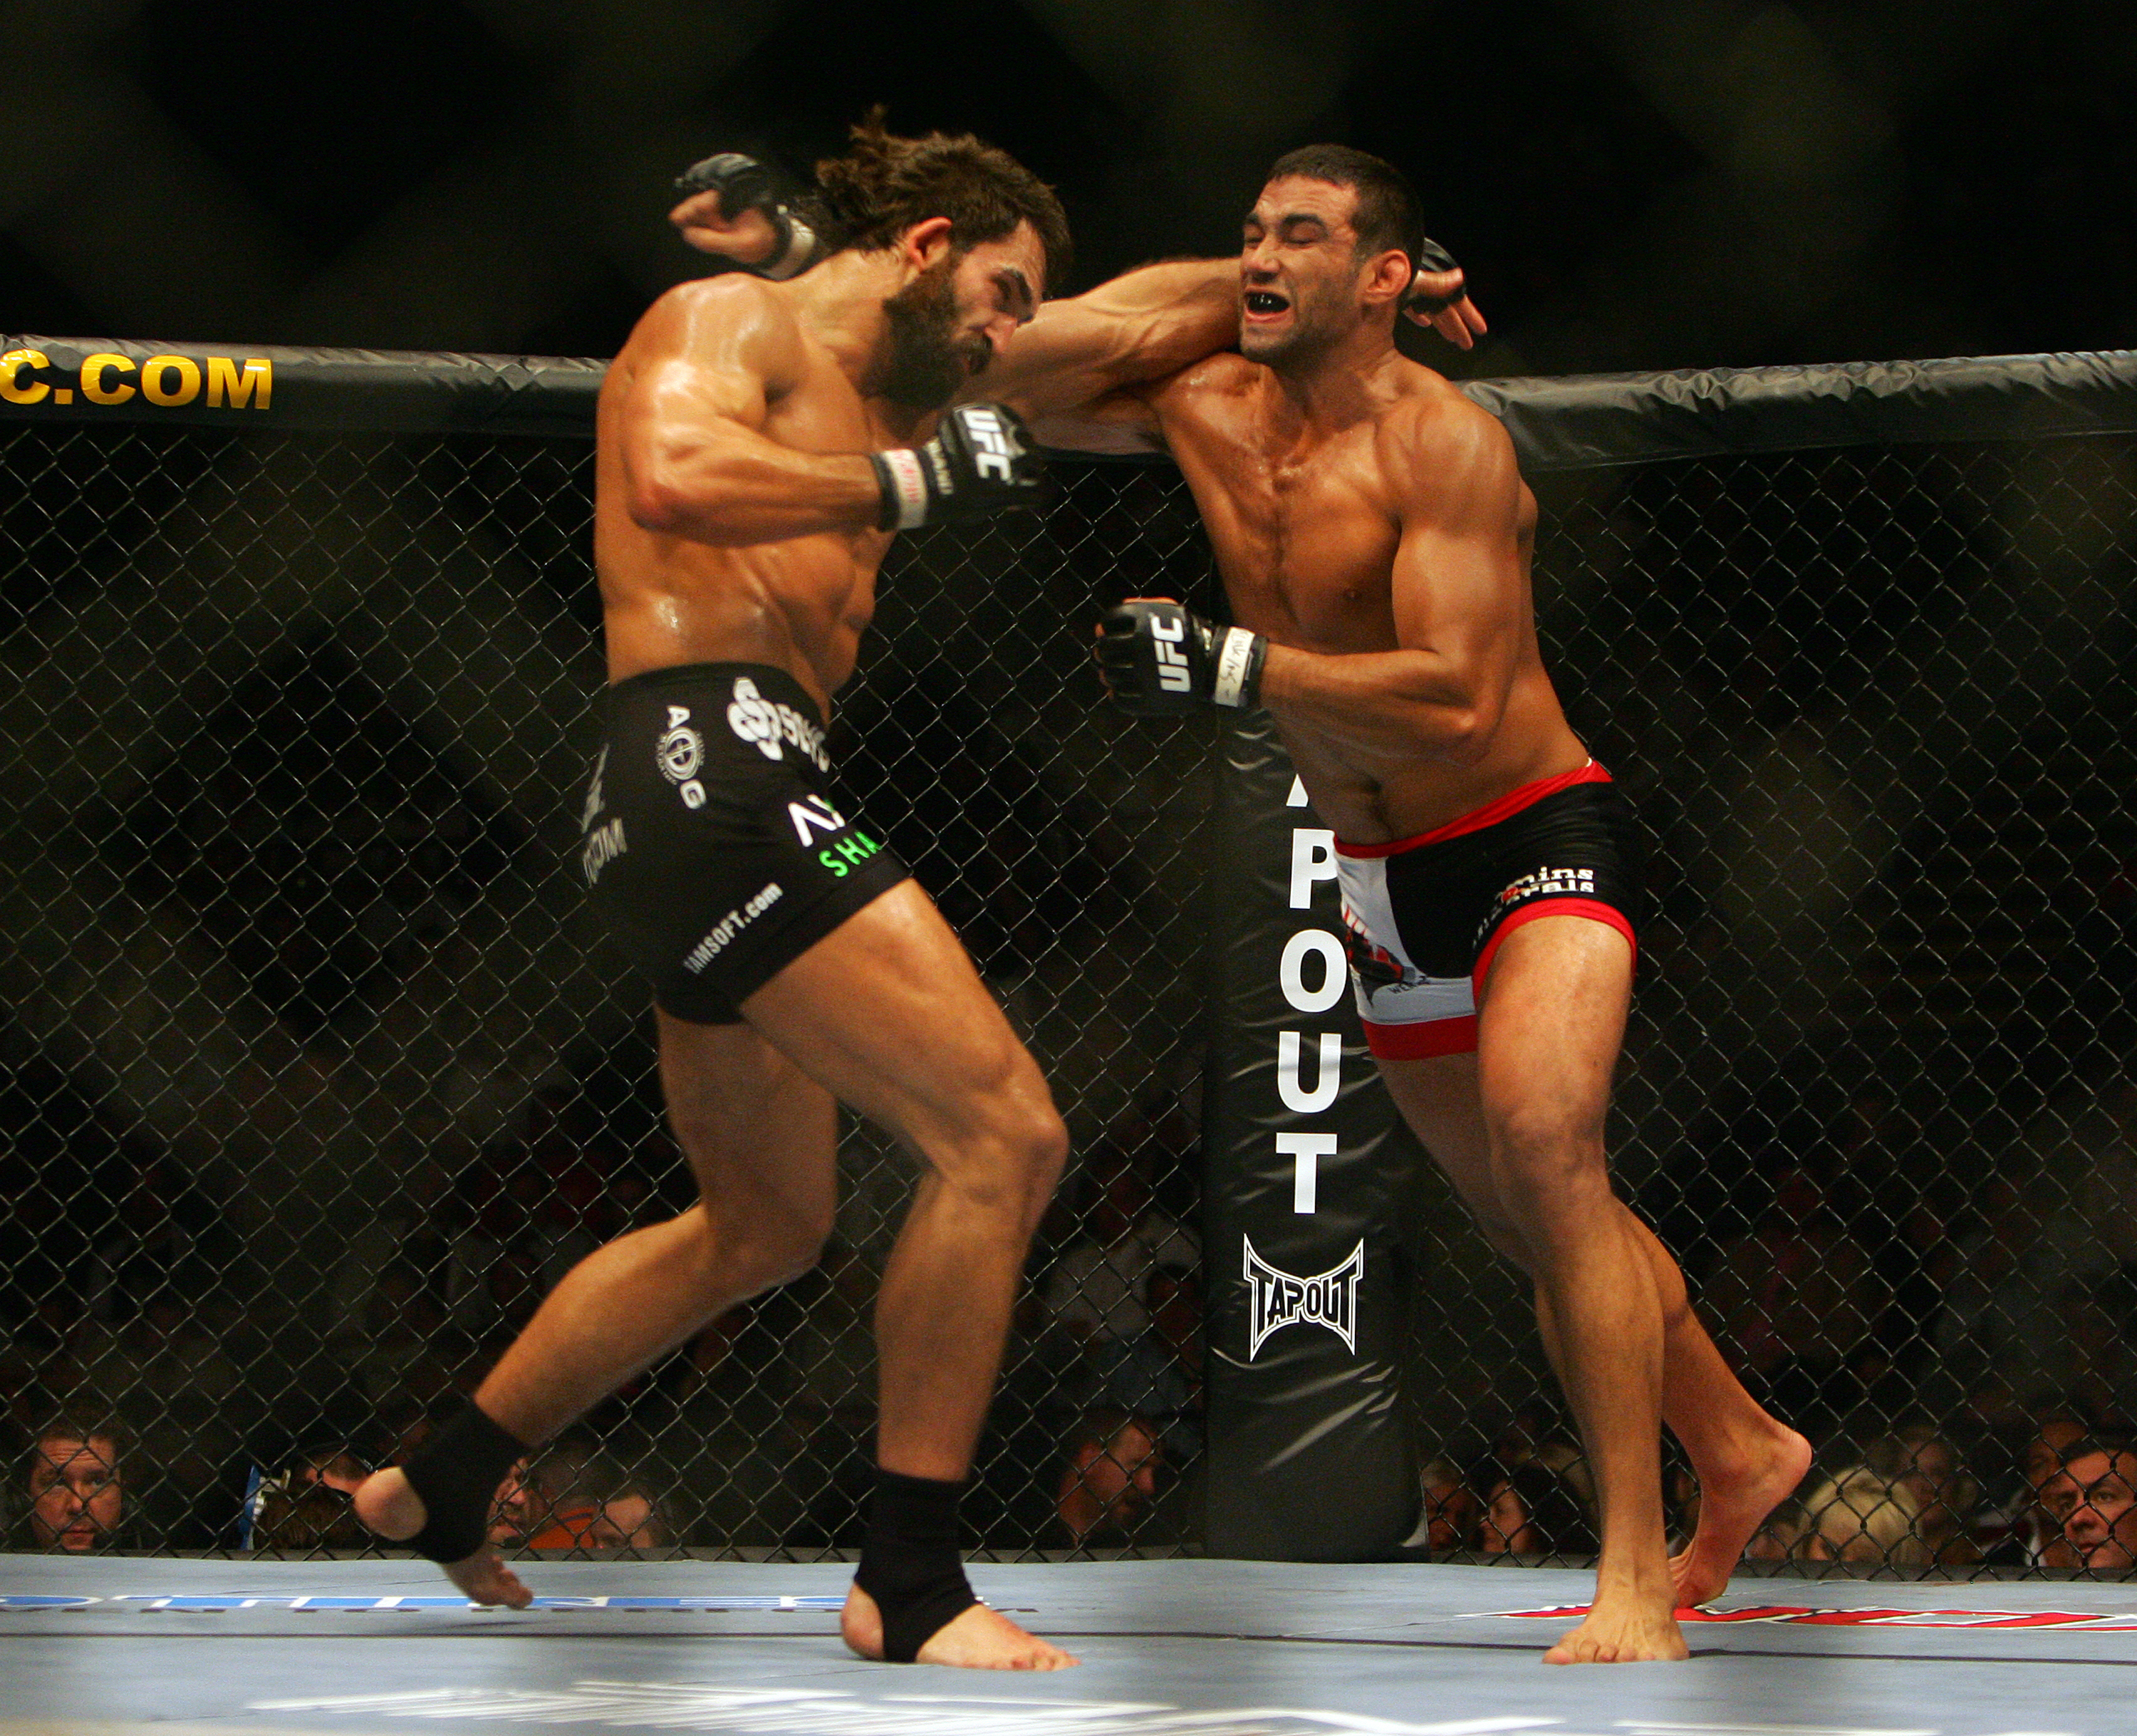 MANCHESTER, UNITED KINGDOM - APRIL 21: Andrei Arlovski of USA and Fabricio Werdum of Brazil in action during a Heavyweight bout of the Ultimate Fighting Championship at the Manchester Evening News Arena on April 21, 2007 in Manchester, England (Photo by G